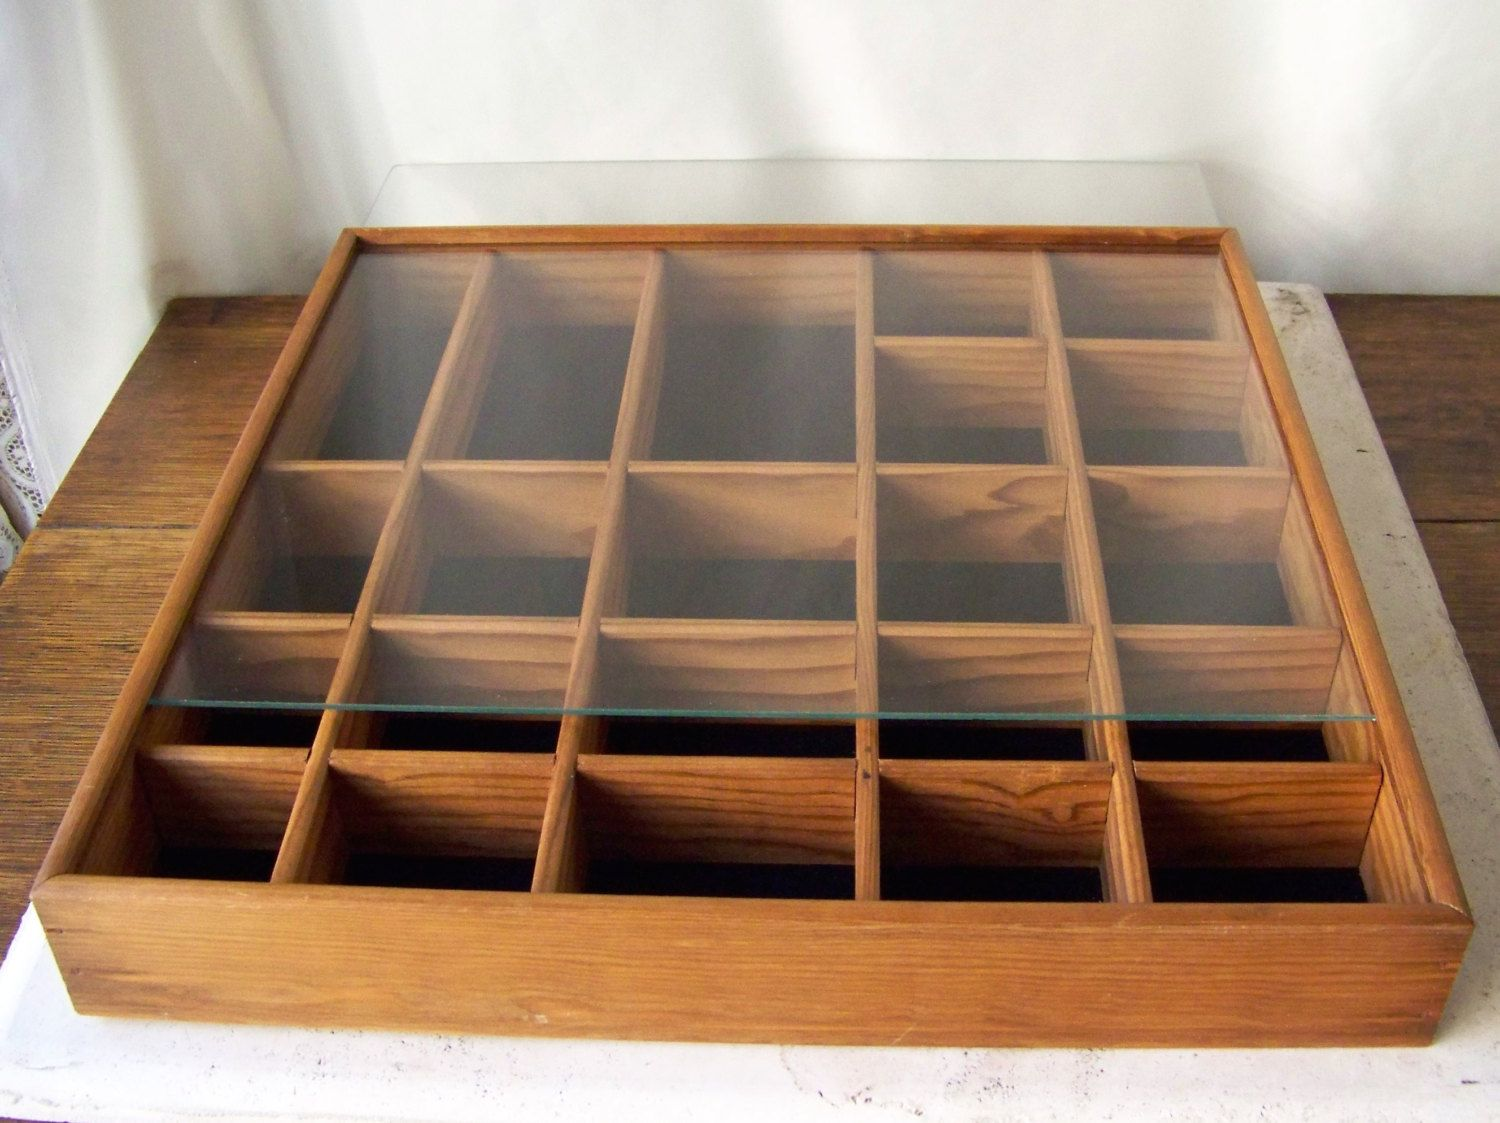 Vintage Display Case Shadow Box Oak Wood Curio Wall Display Cabinet Sliding Glass Cover 1990s By Cynthiasatti Wall Display Cabinet Vintage Display Display Case